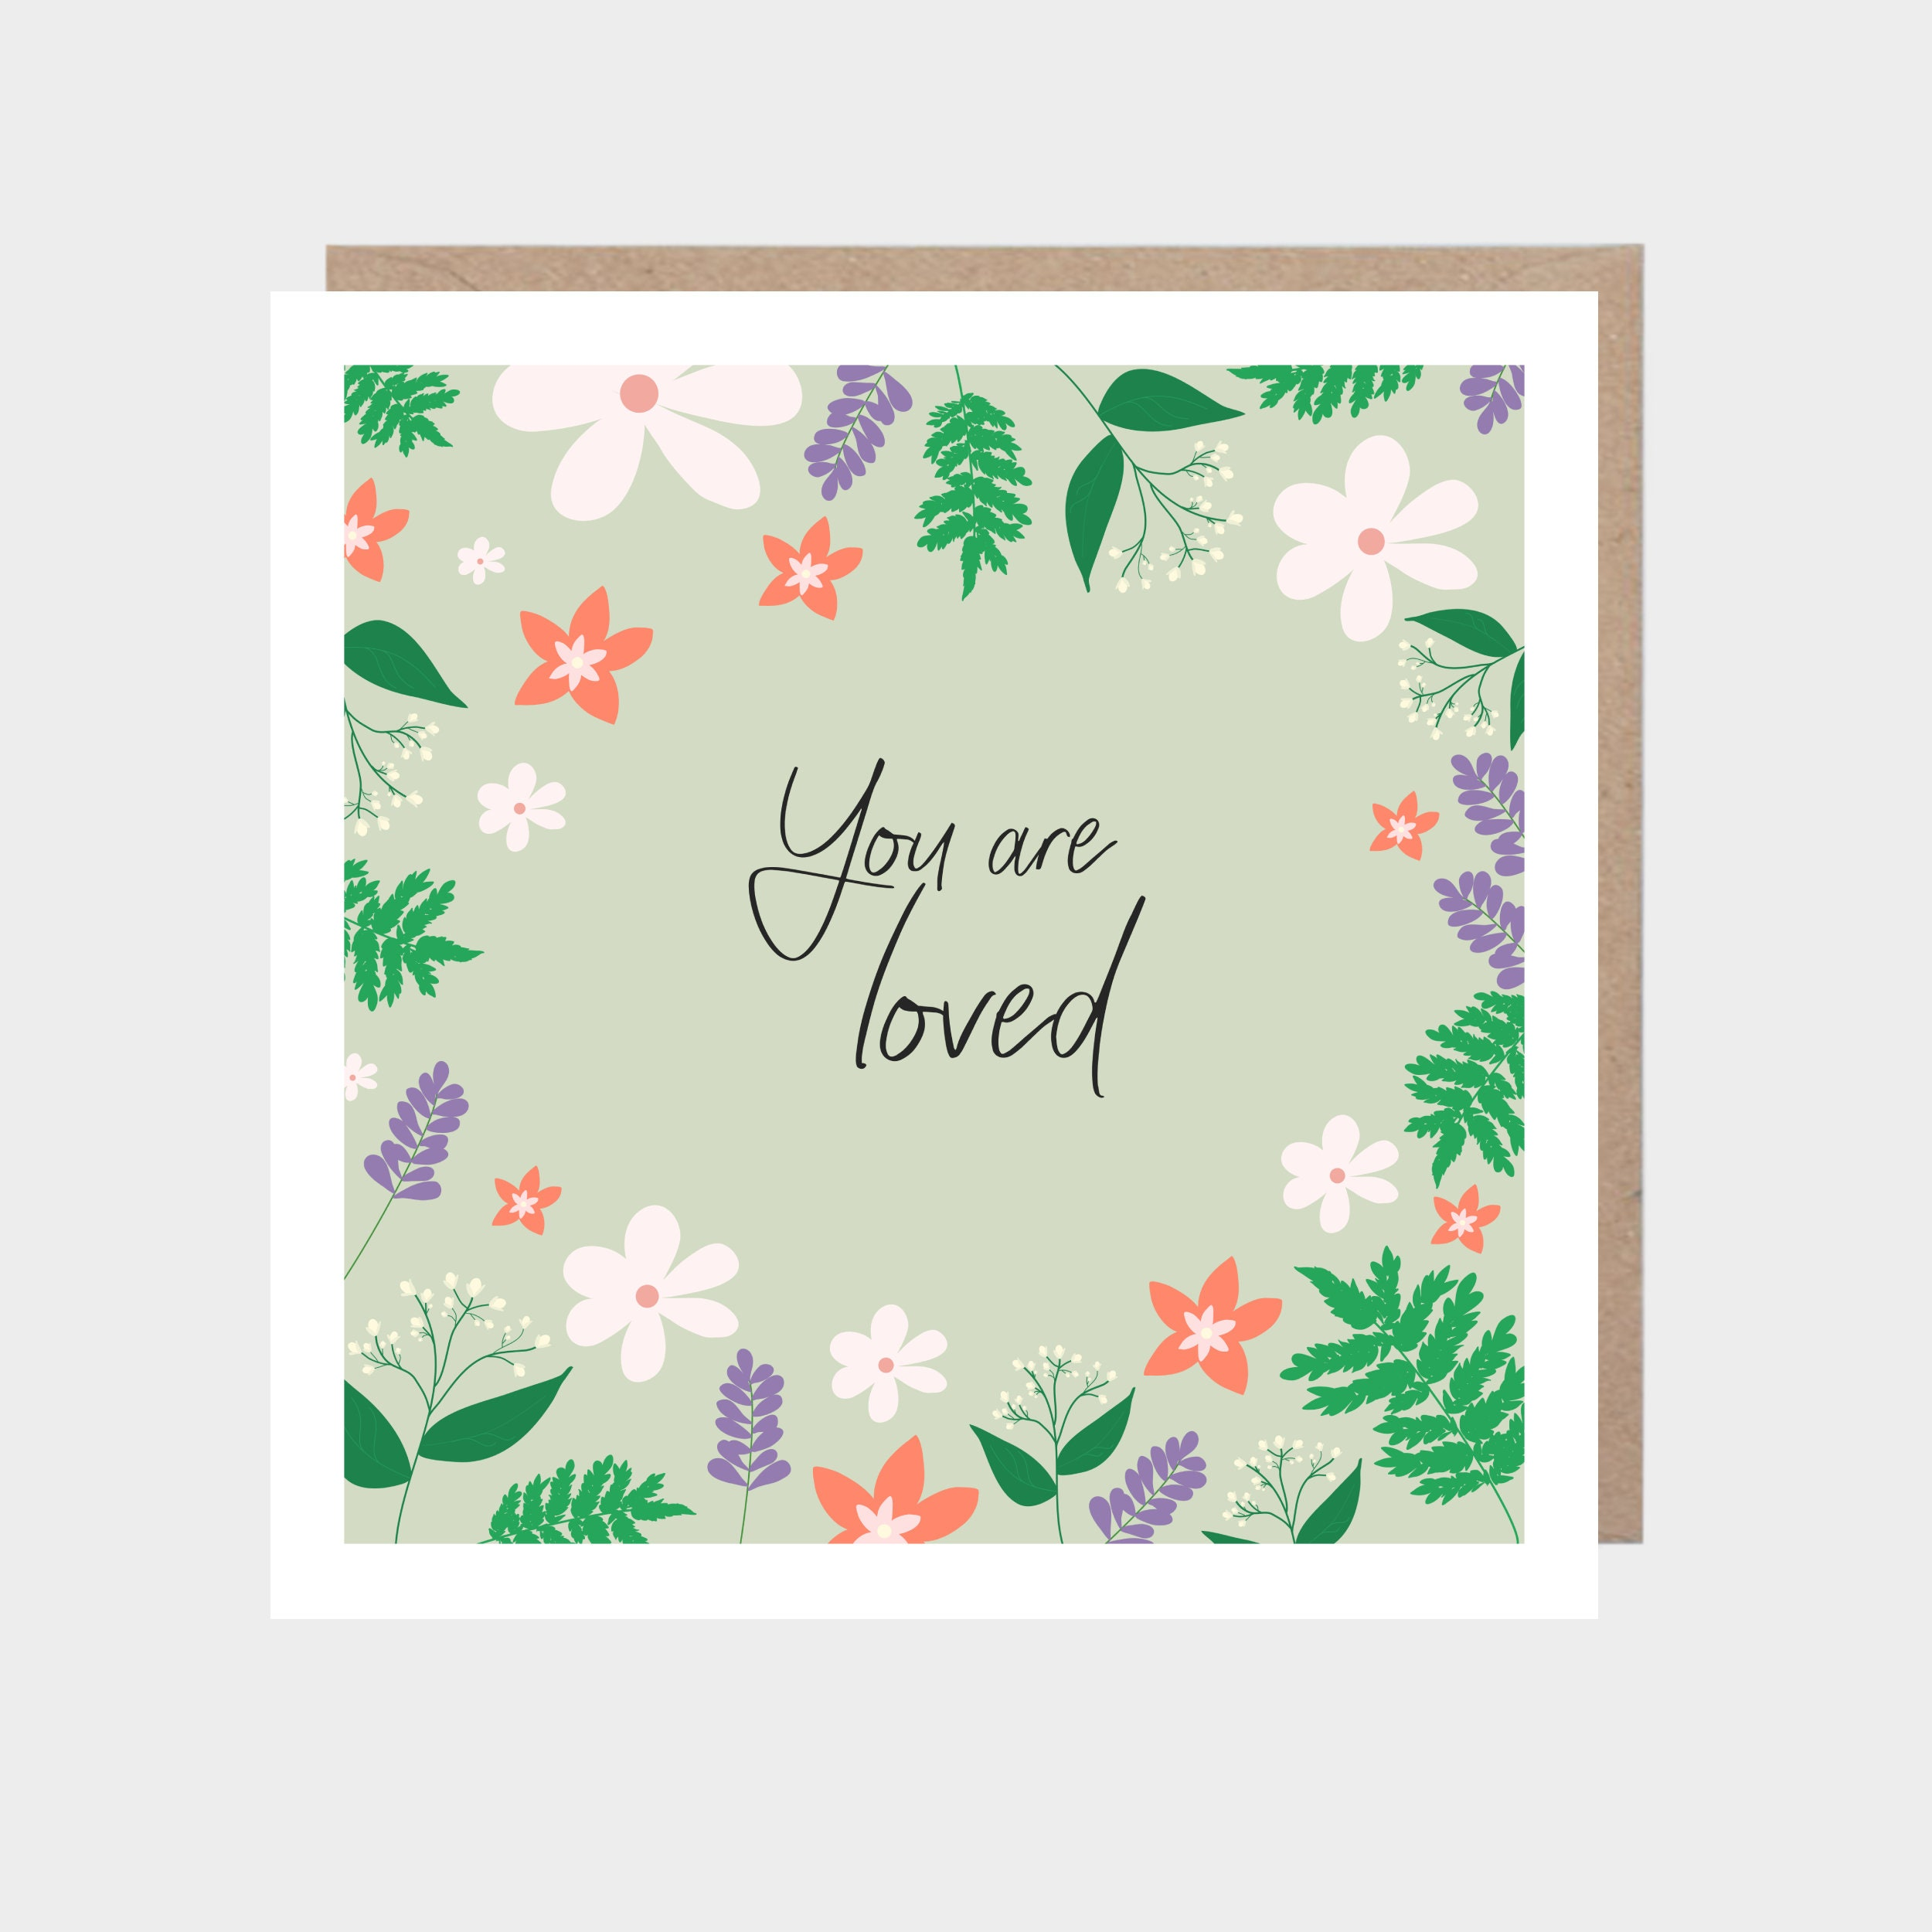 Pale green square card with an illustrated floral border, with a brown kraft envelope